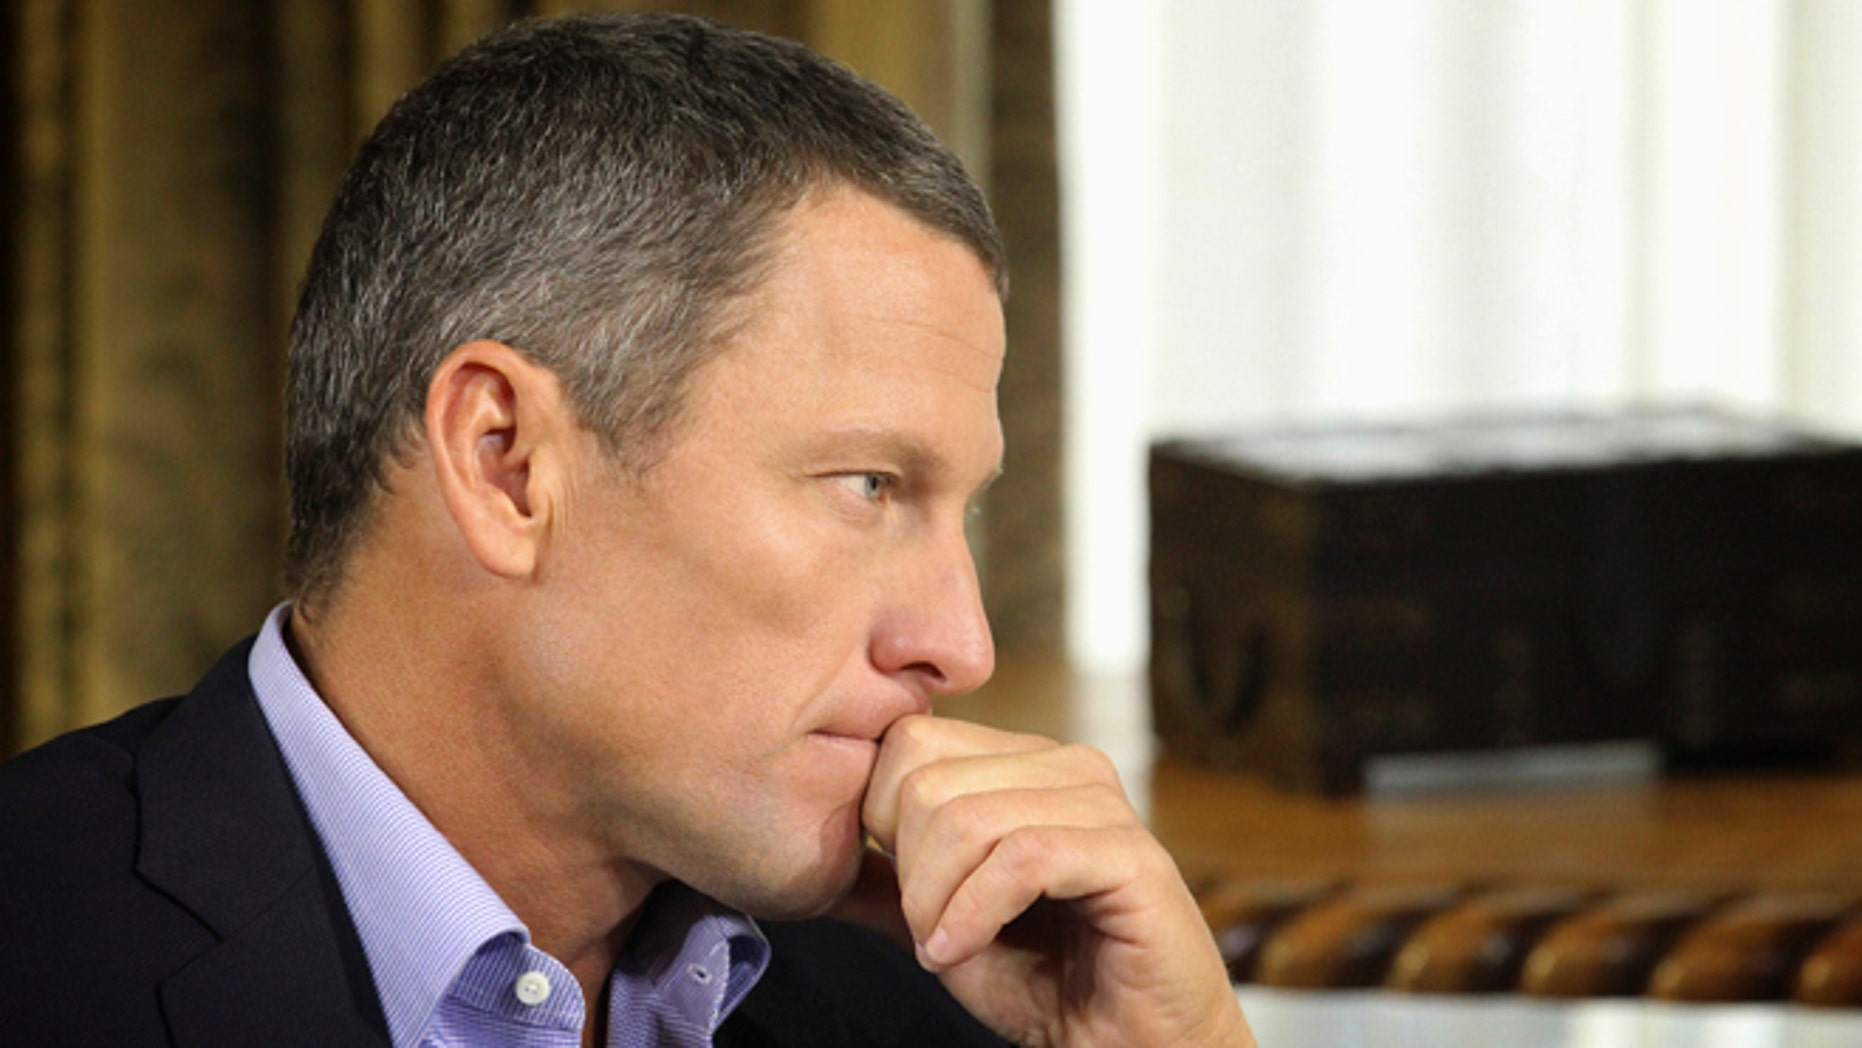 """In this Monday, Jan. 14, 2013, file photo provided by Harpo Studios Inc., Lance Armstrong listens as he is interviewed by talk show host Oprah Winfrey during taping for the show """"Oprah and Lance Armstrong: The Worldwide Exclusive"""" in Austin, Texas."""